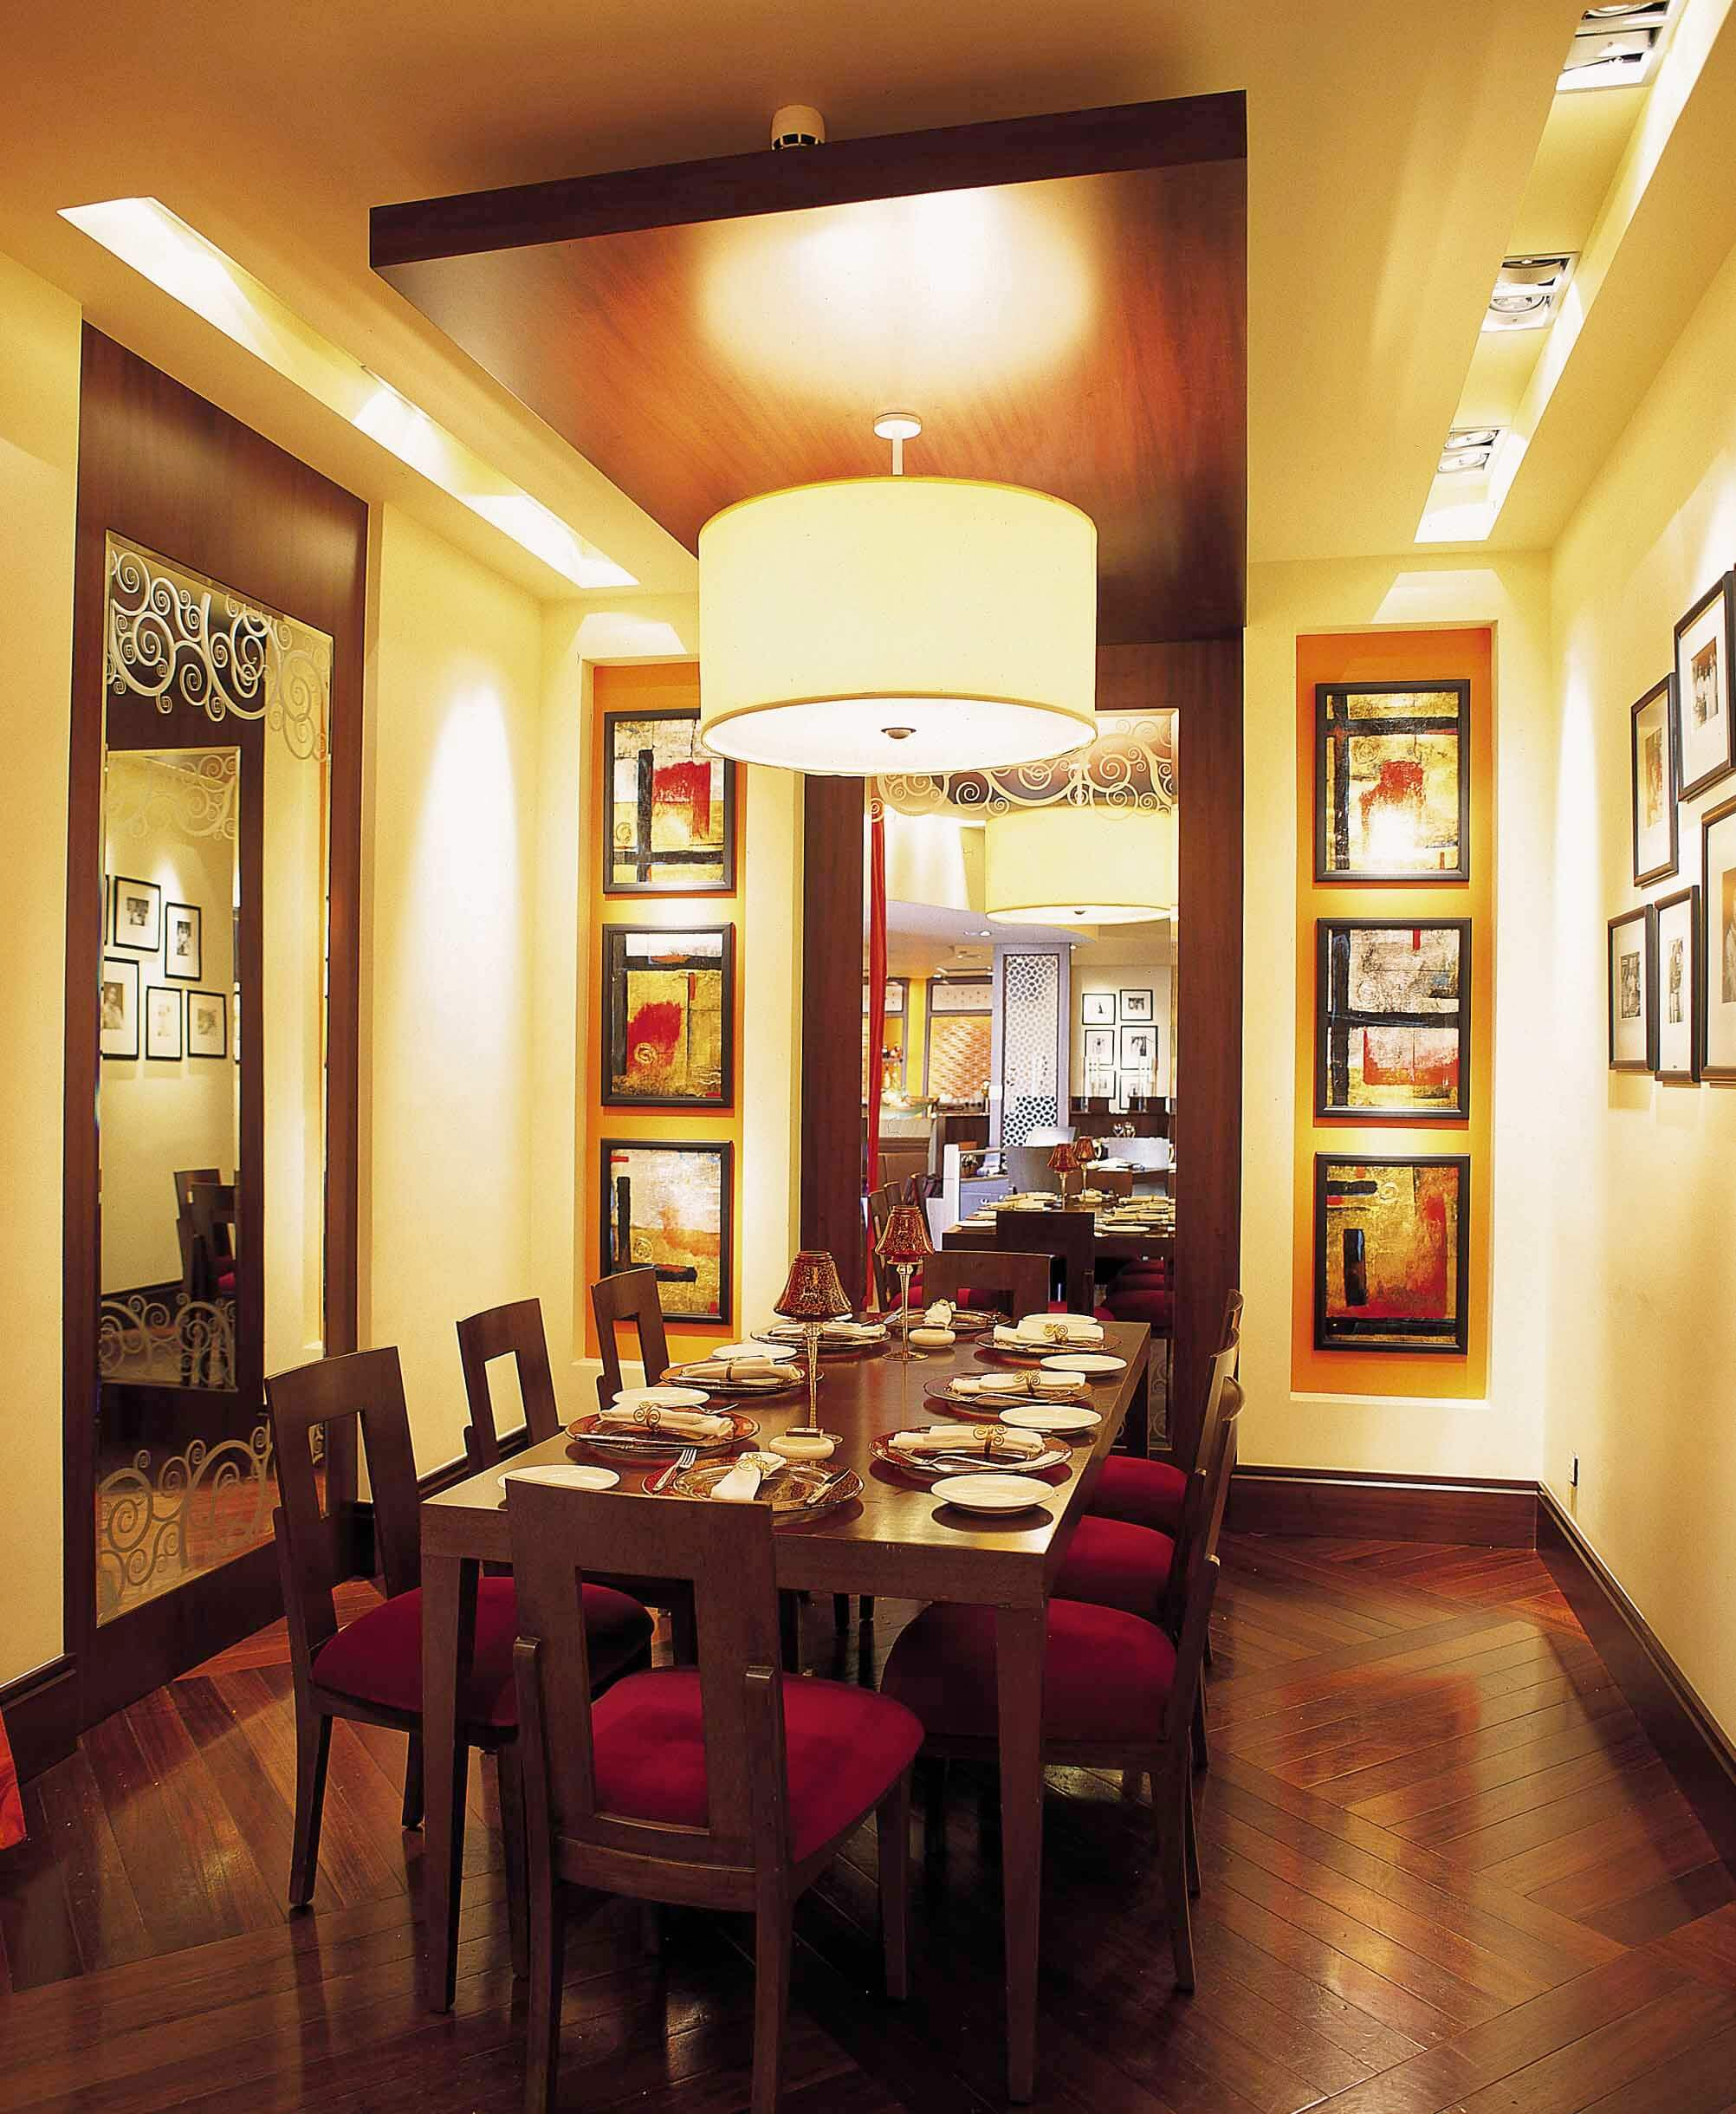 Restaurant Bar Interior Design: Modern Indian Bar And Restaurant Chain